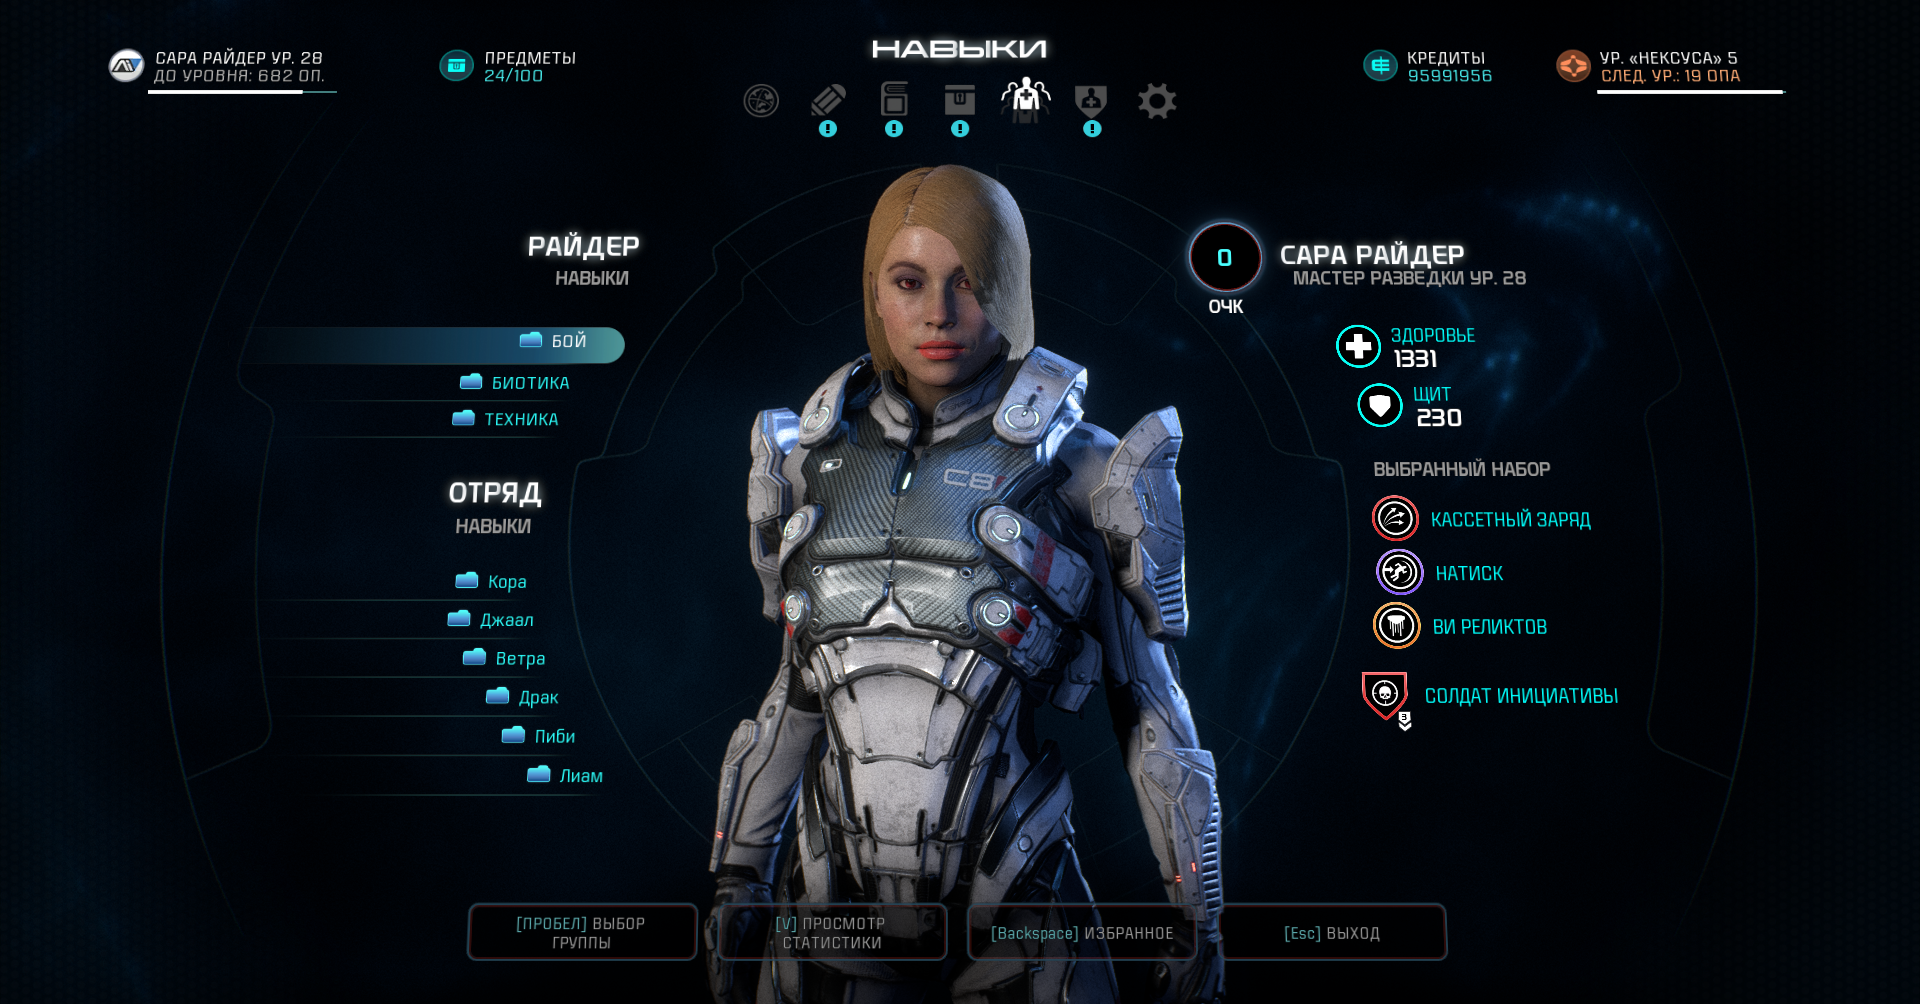 Mass effect 2 gibbed save editor pc download norseven.